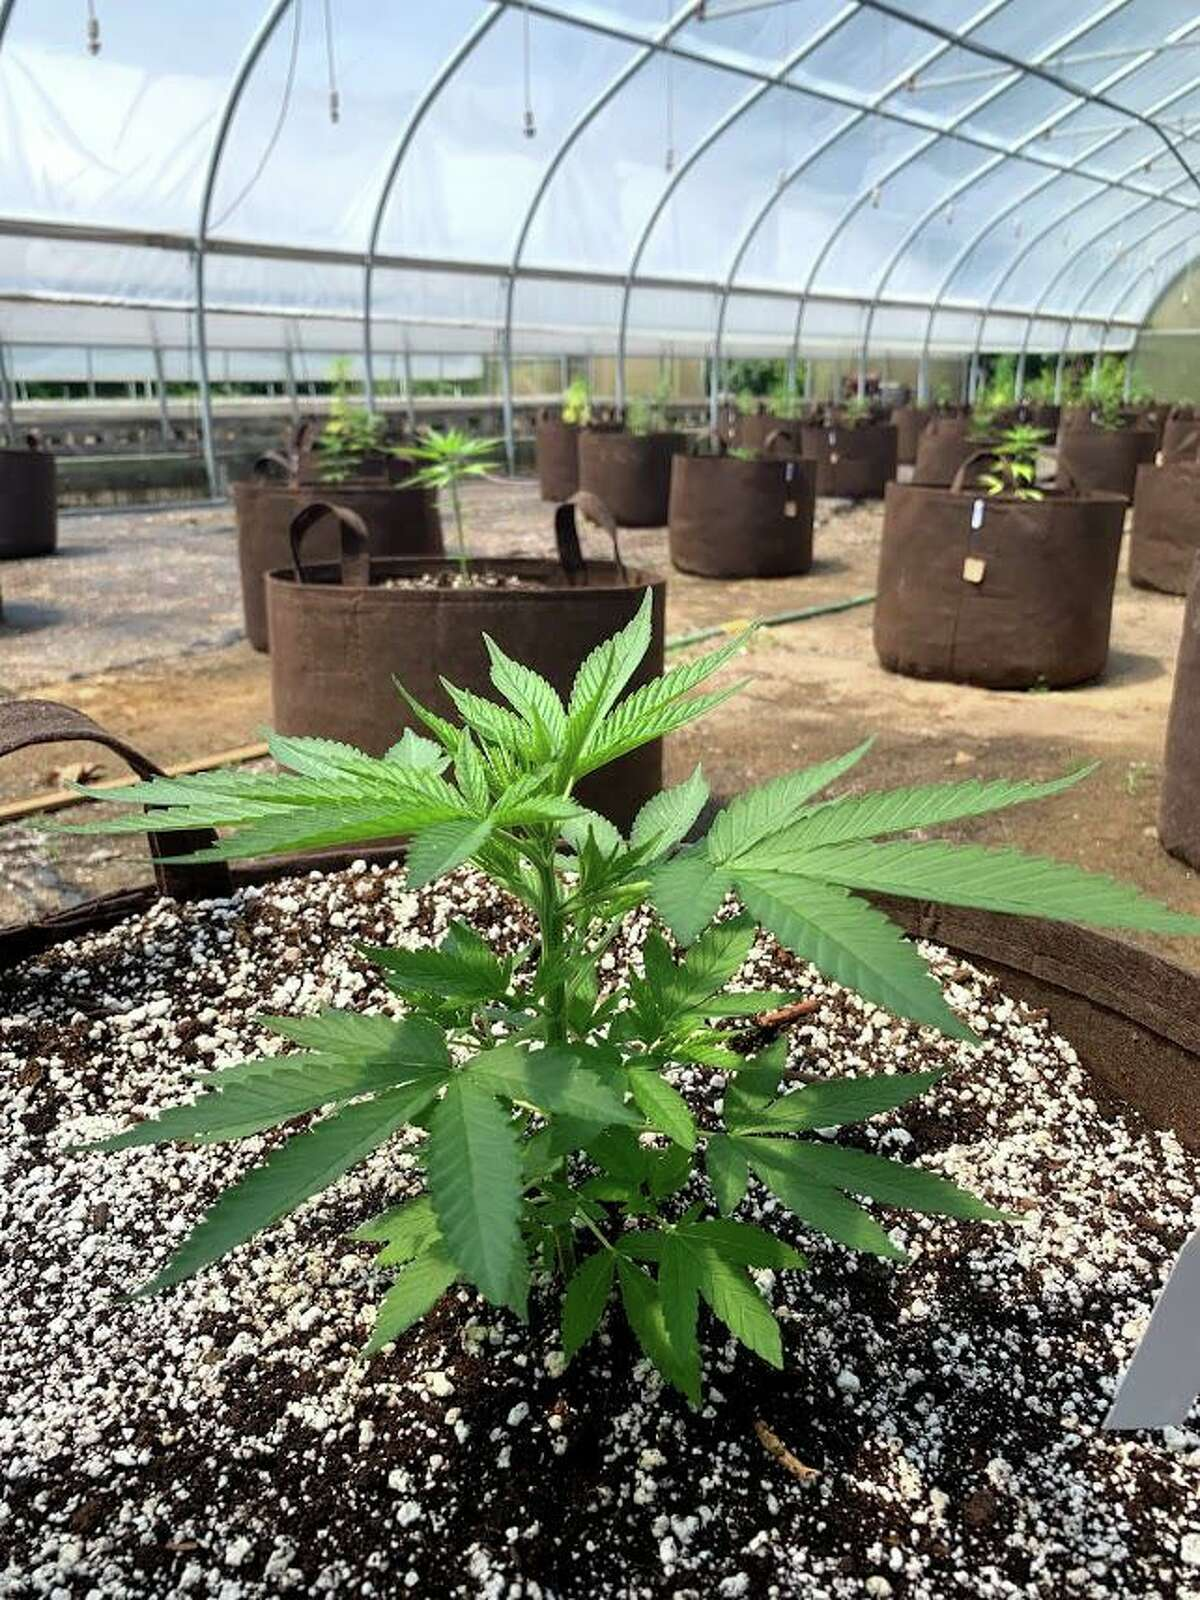 A hemp plant is shown in the greenhouses at Running Brook Farms in Killingworth. The farm just receved a $5,918 USDA rural development grant, which will be used to make energy efficiency improvements with the purchase and installation of LED lighting.